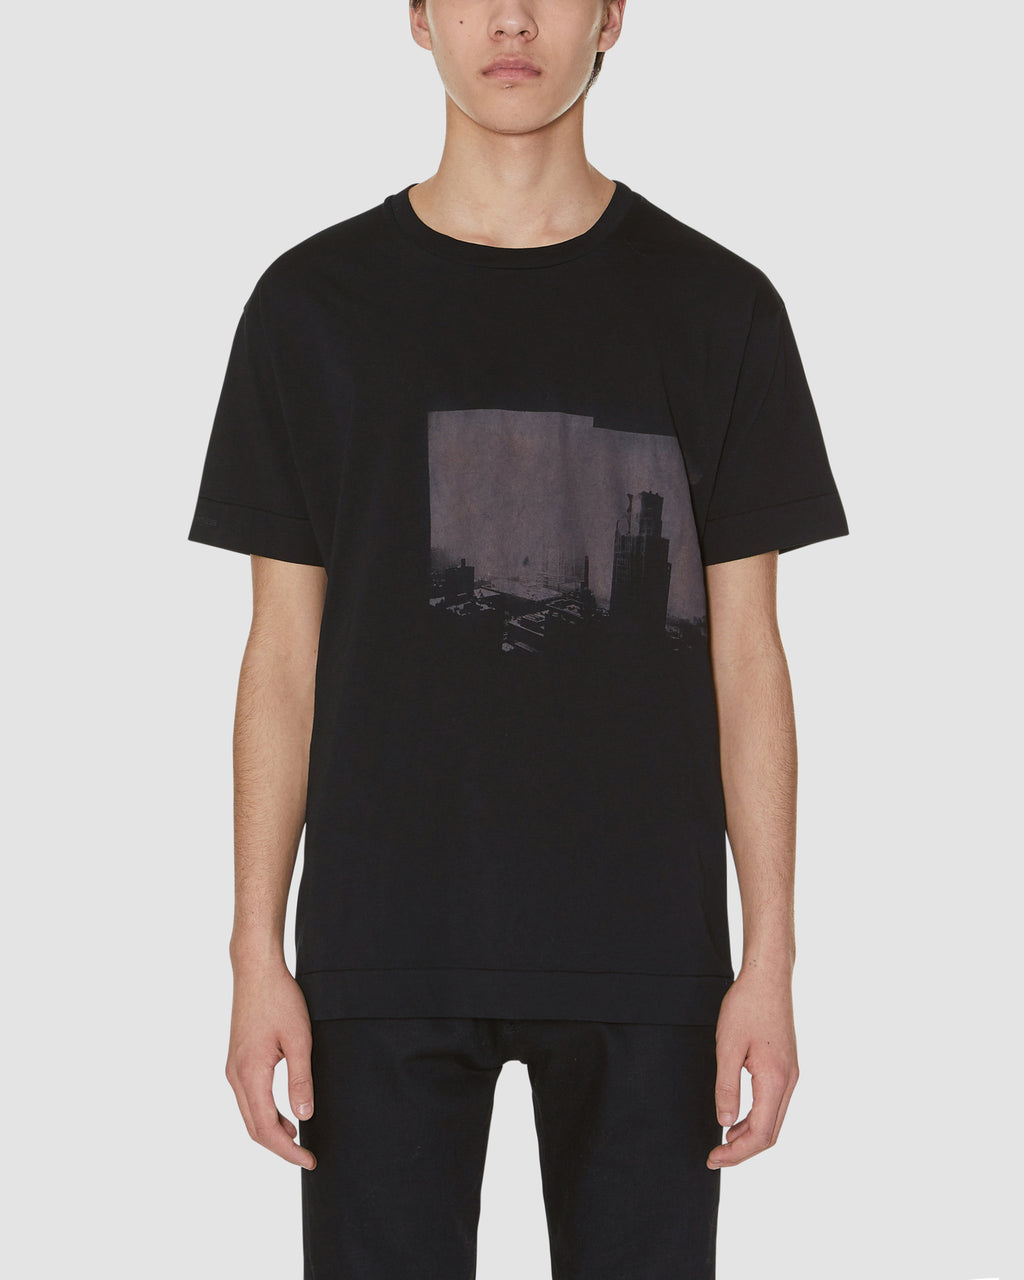 ORANGE CITY SCAPE THORN TEE - Pre Order